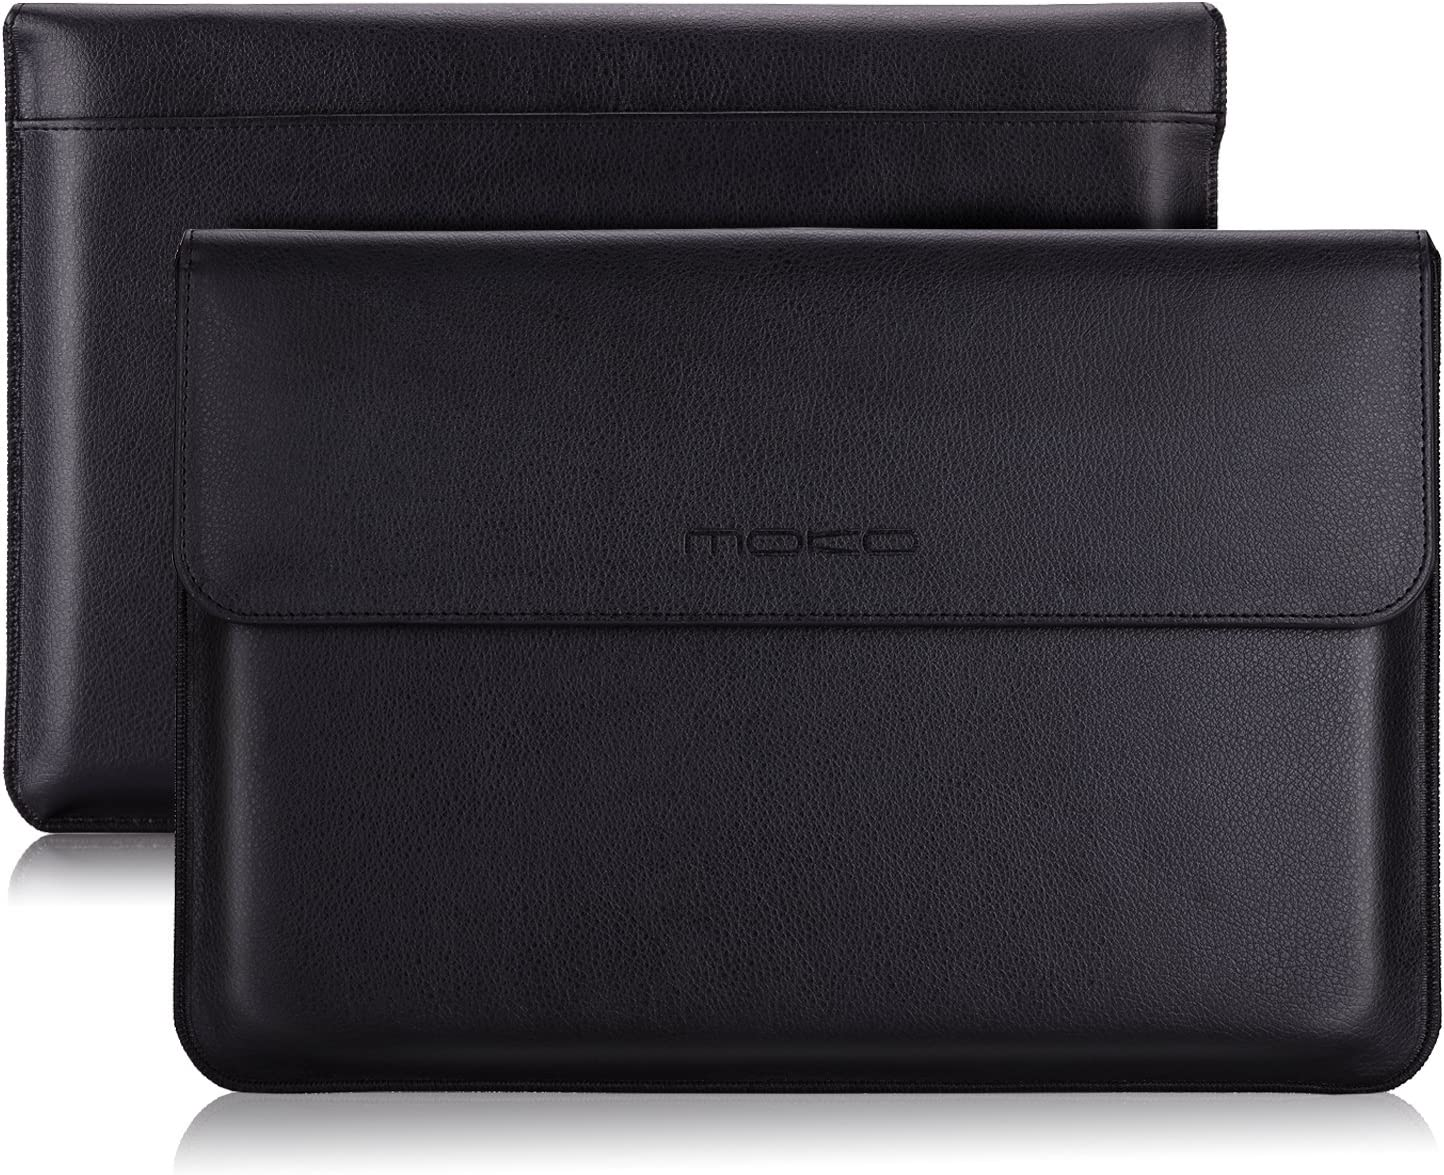 "MoKo Tablet Sleeve Case Bag, PU Leather Protective Laptop Sleeve Compatible with Surface Pro 7/Pro 6/ Pro 5/Pro 4/Pro 3/Pro 12.3/Pro LTE 12.3""/MacBook Air 11.6 Inch, with Pen Holder - Black"